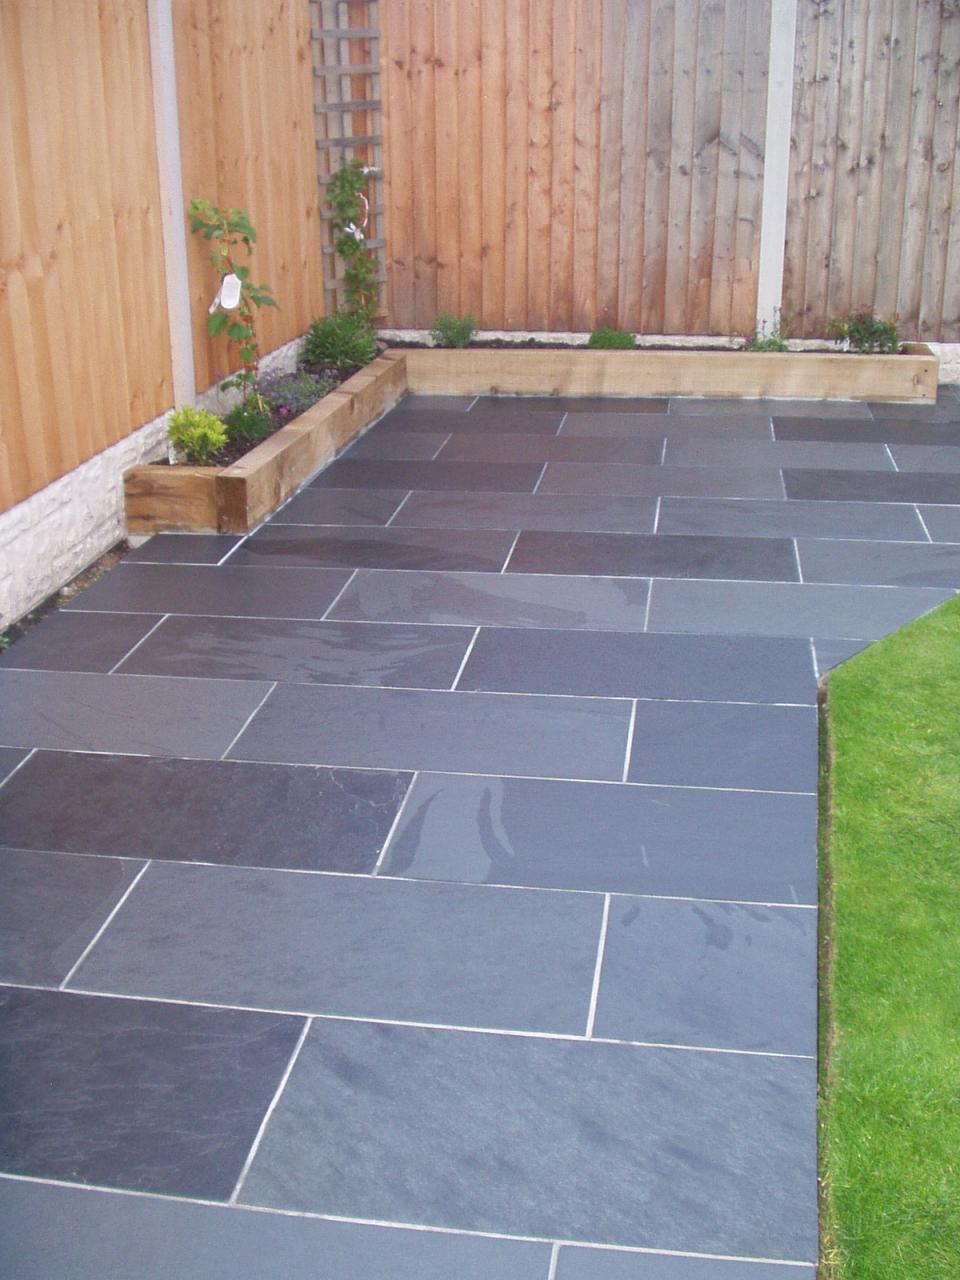 Slate paving garden patio tiles not slabs for Garden decking and slabs